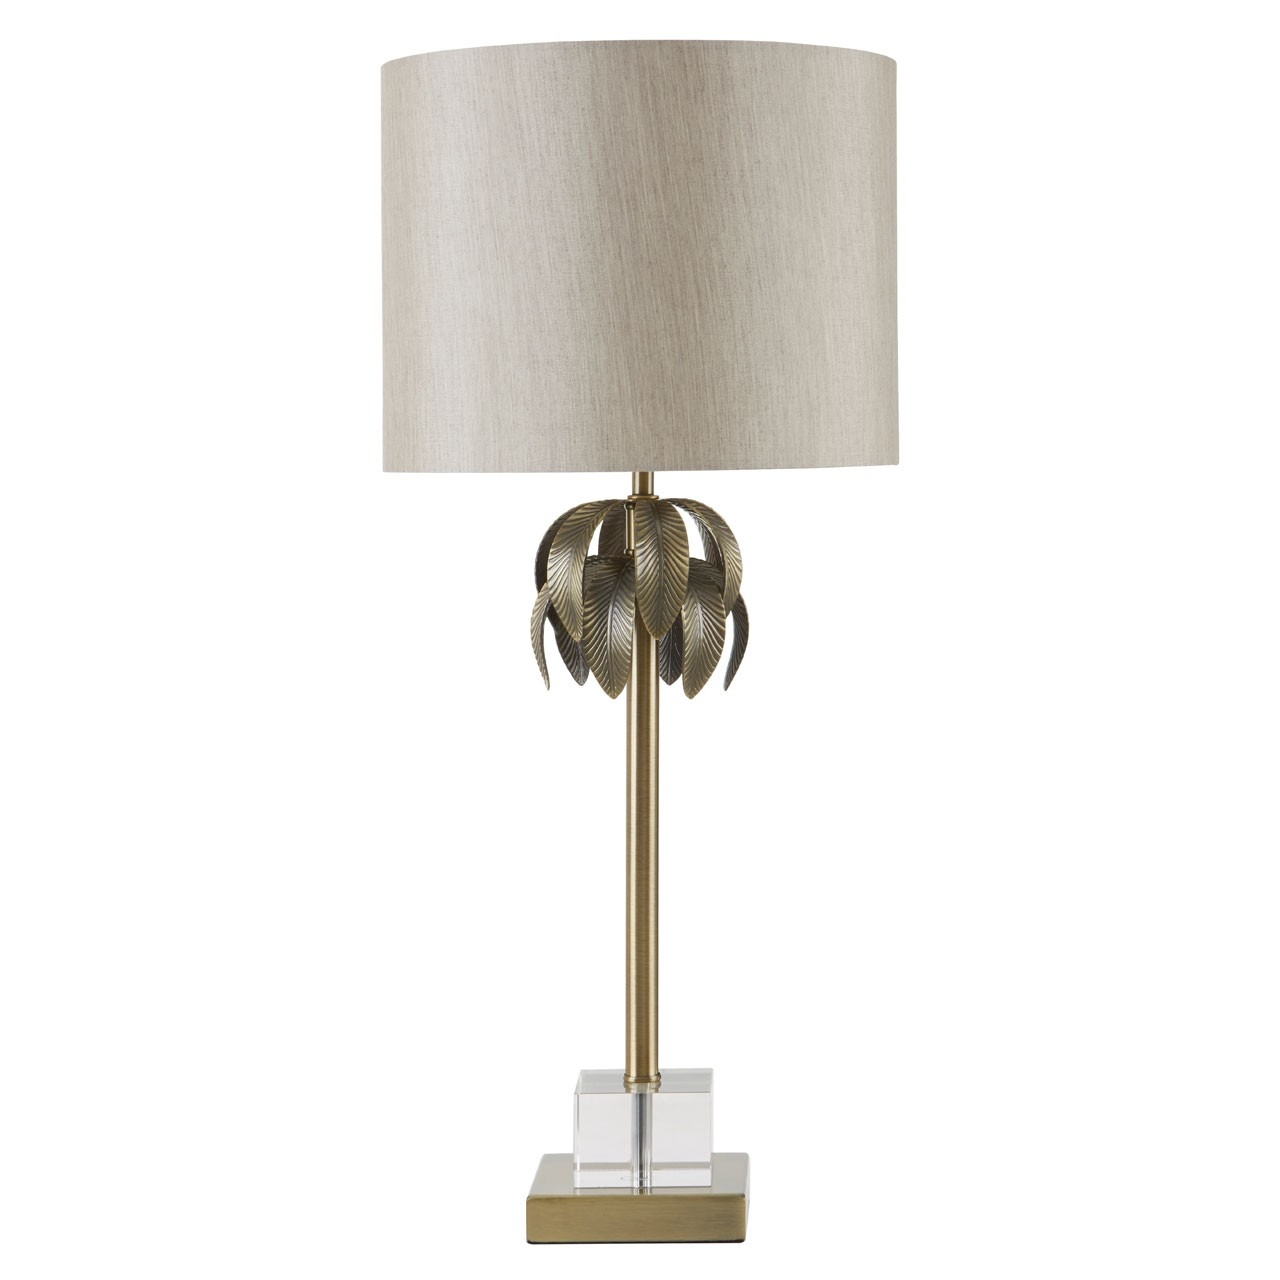 Stylish Herta Table Lamp For Home Kitchen